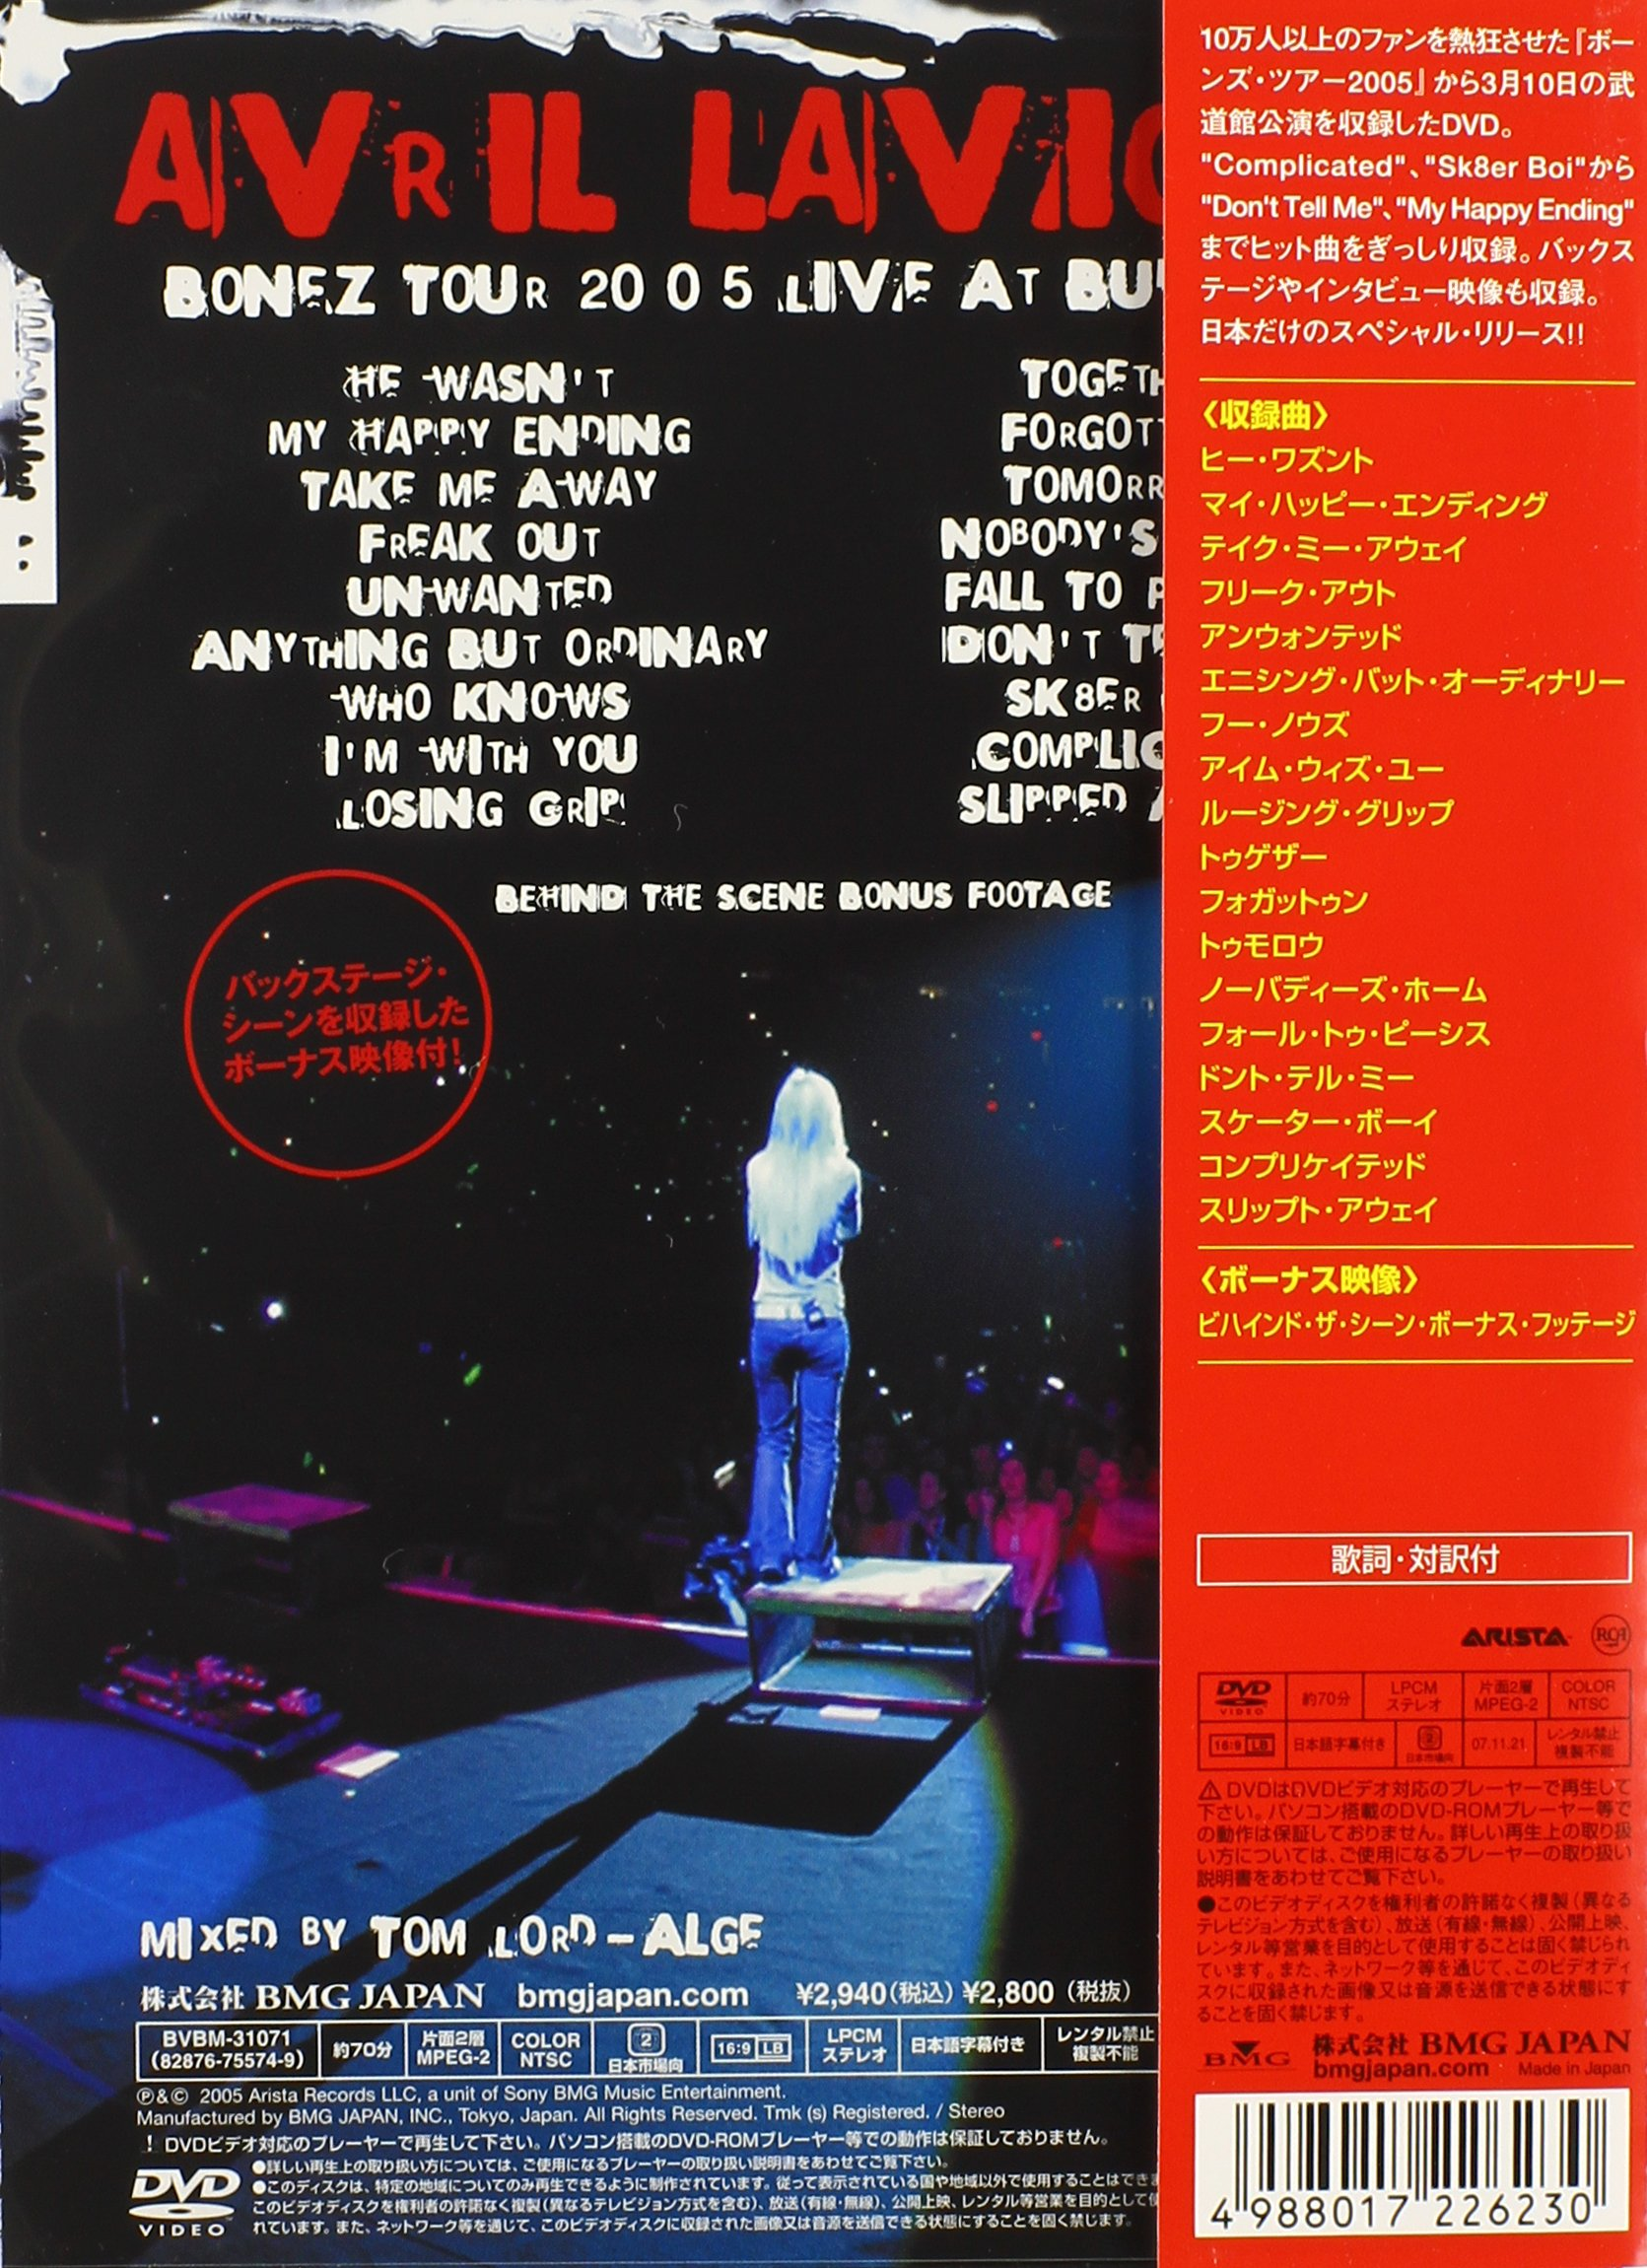 Bonez Tour 2005 Live at Budokan